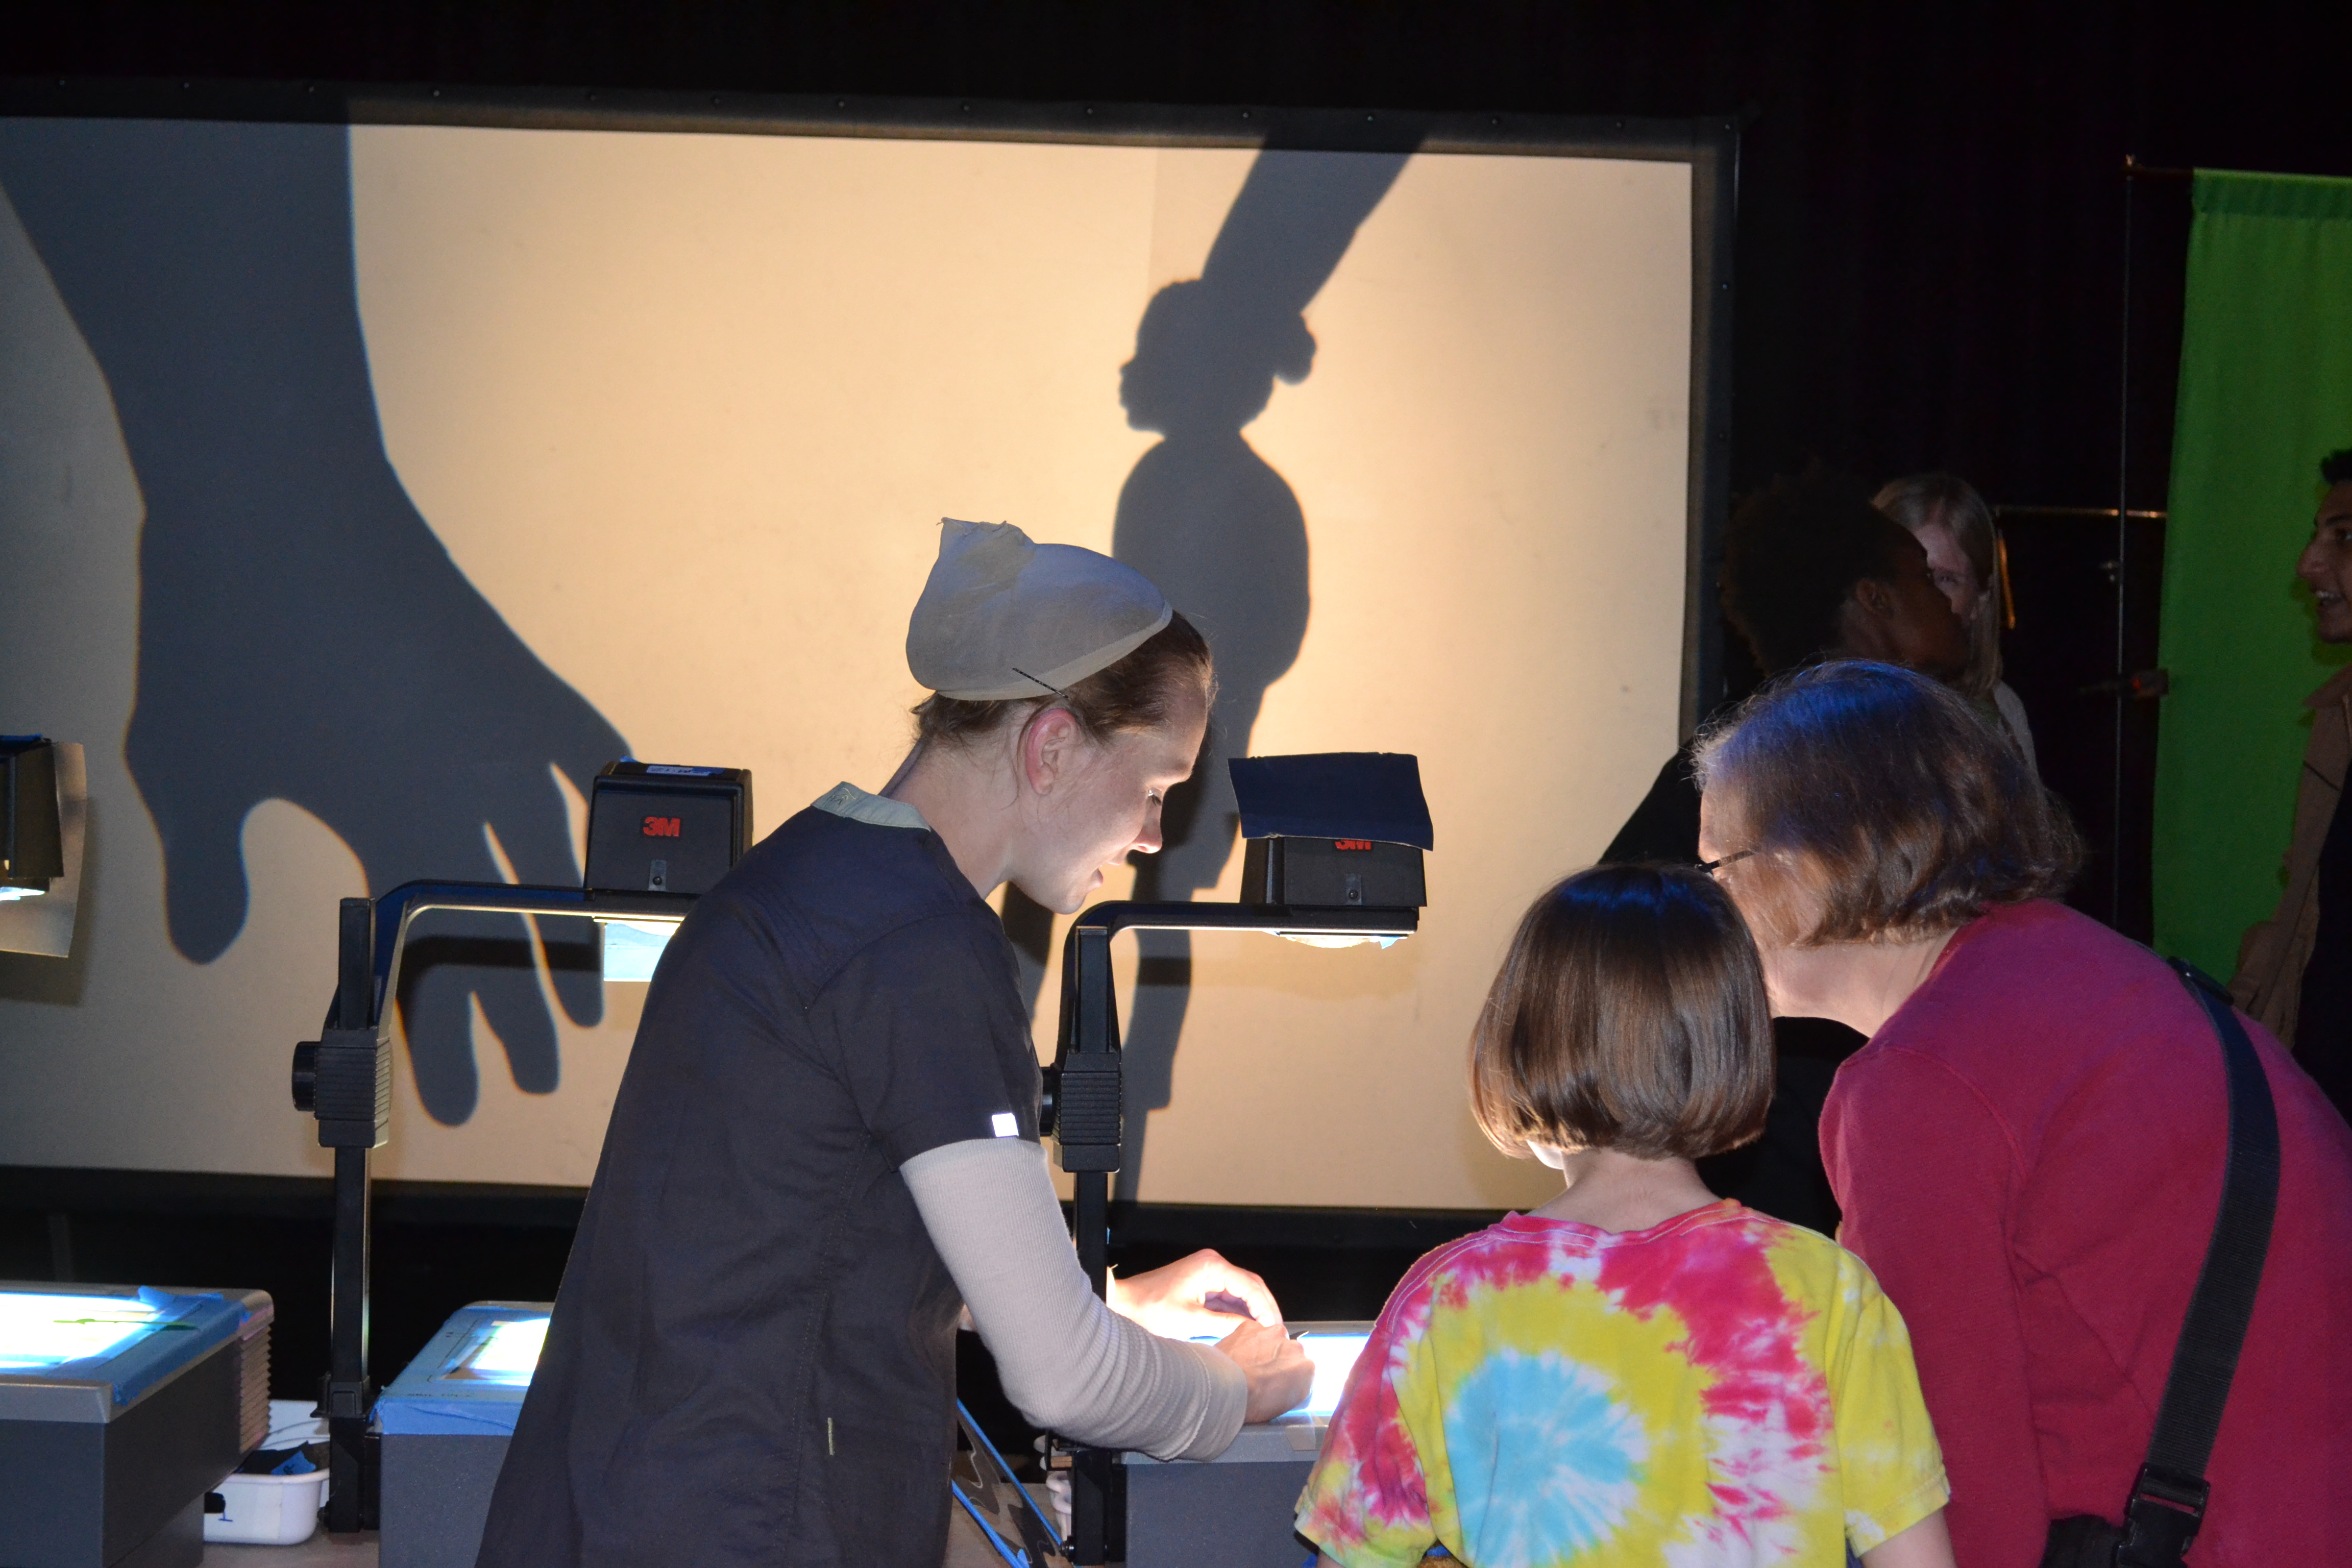 Visitors work with projectors at the Lake Placid Center for the Arts